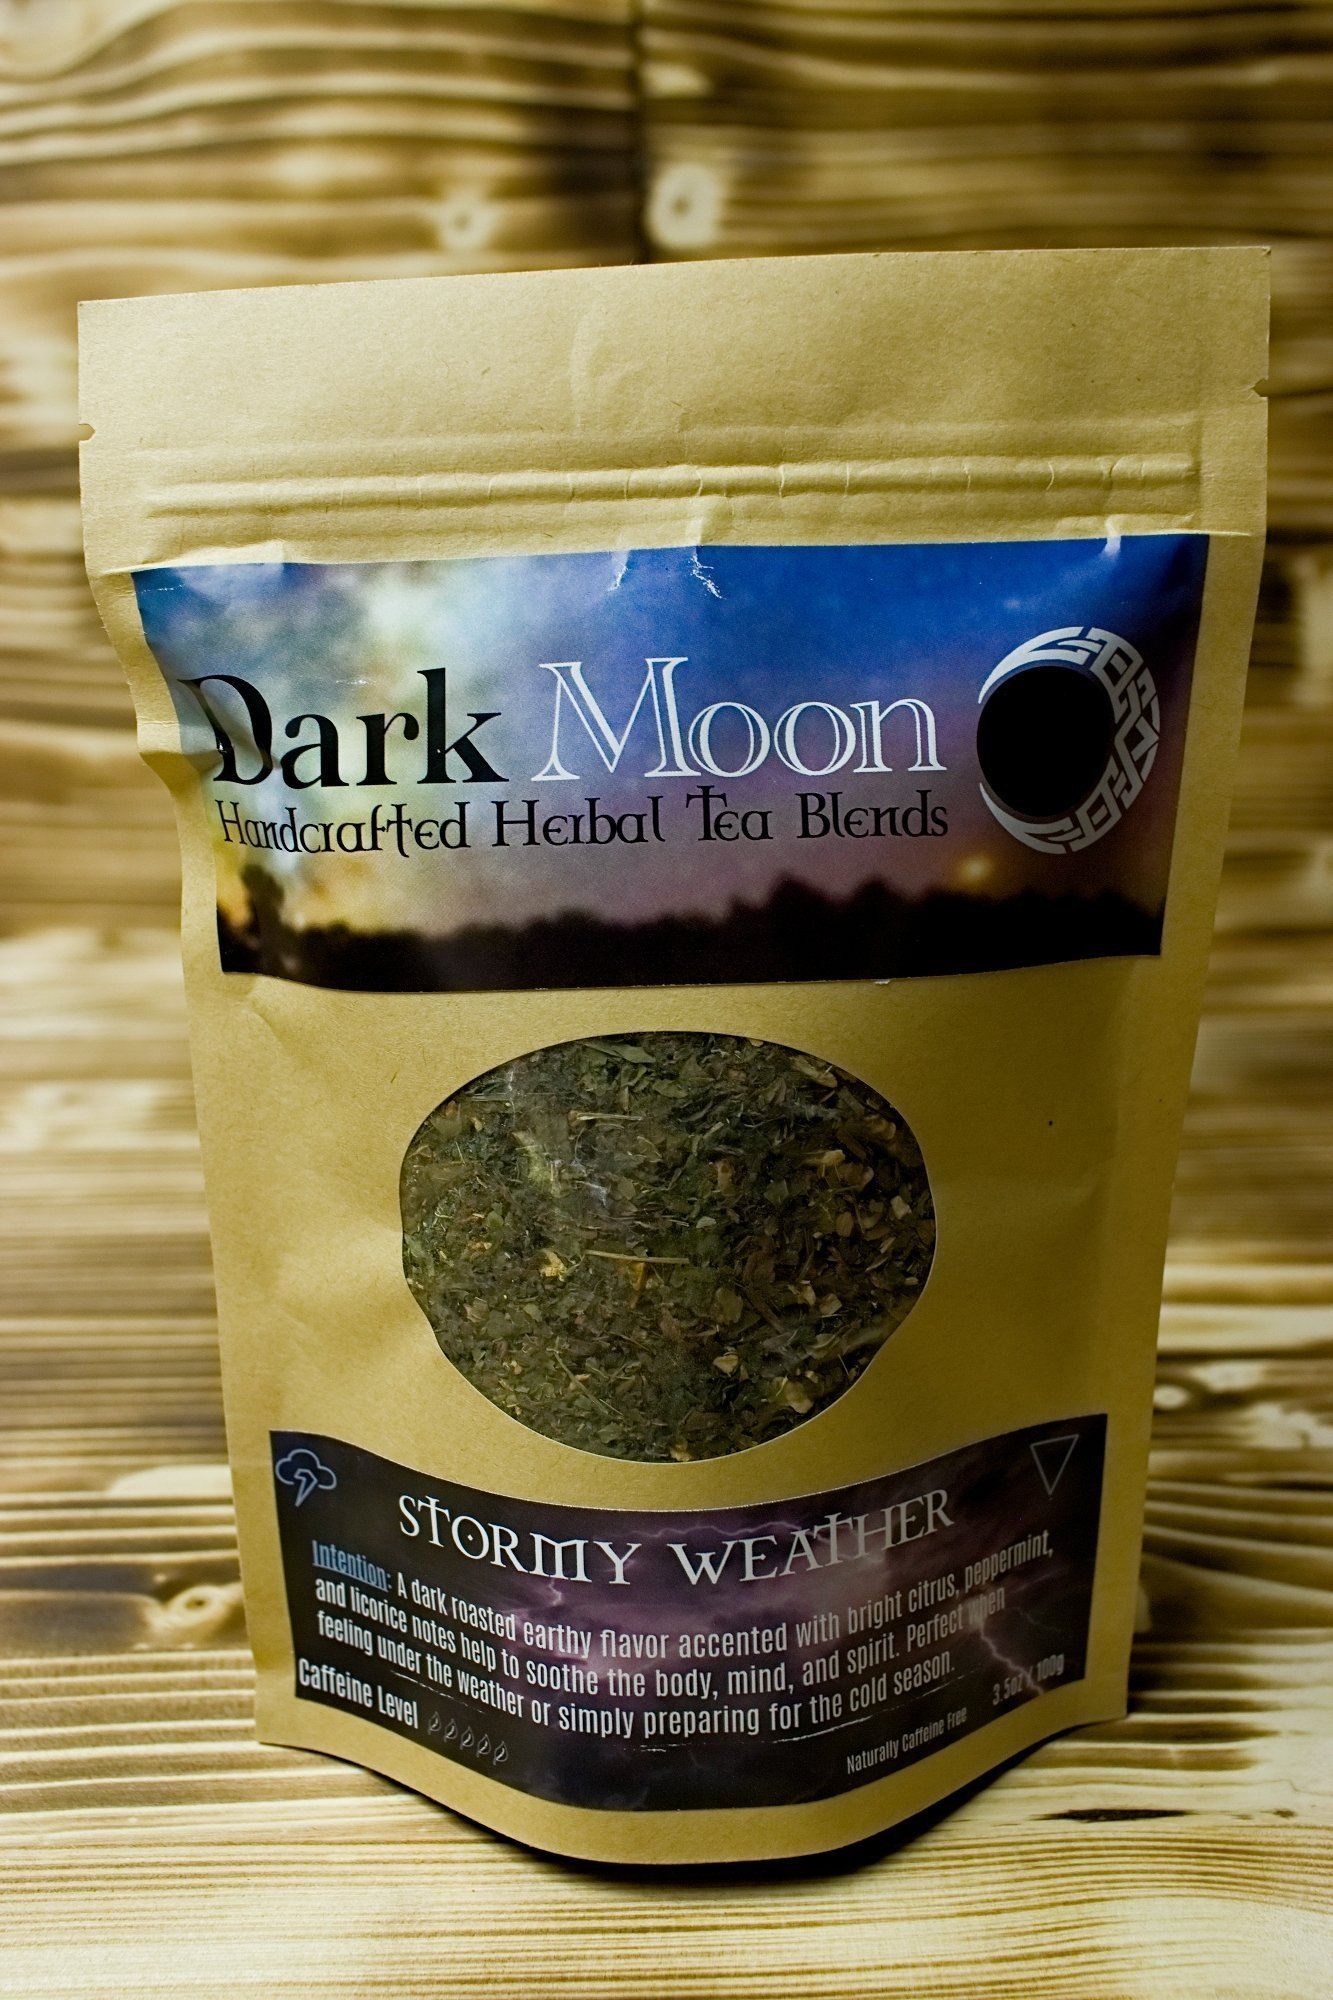 Dark Moon Teas – Stormy Weather